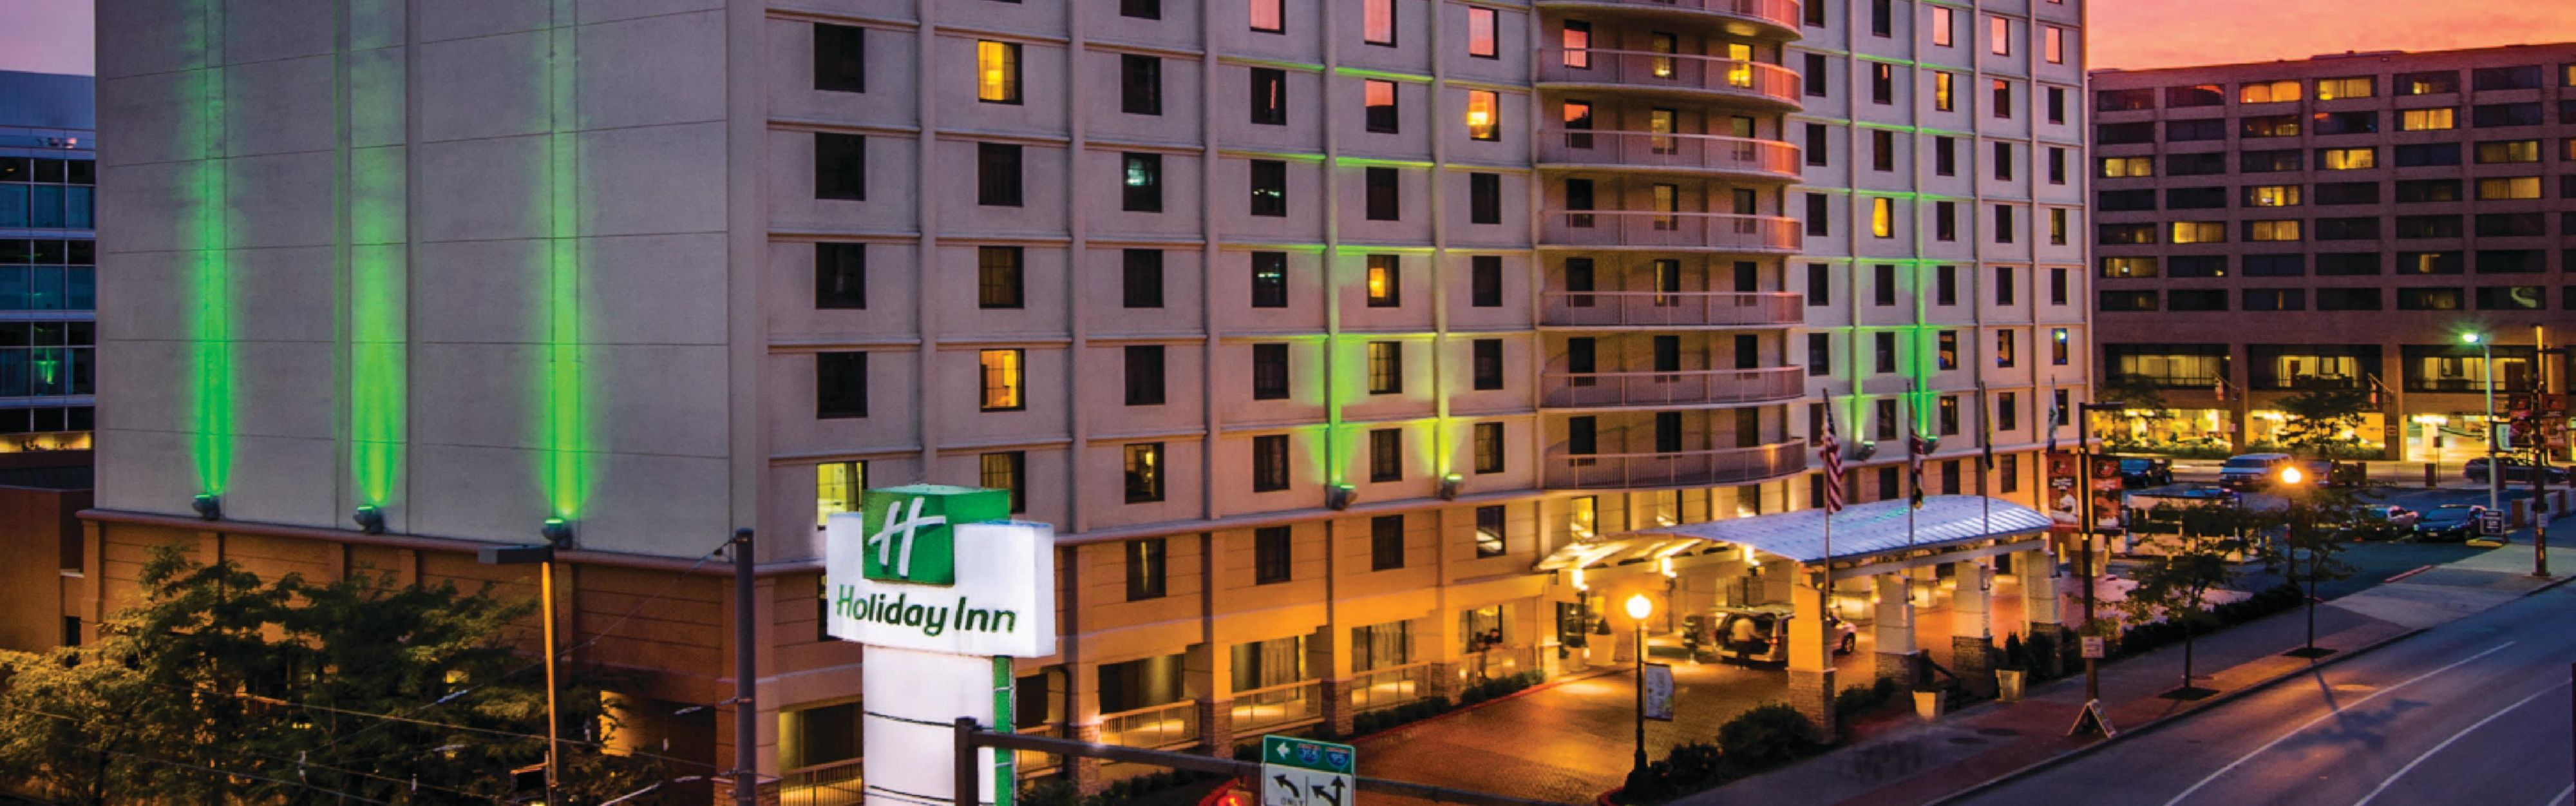 Hotel Exterior; Holiday Inn Inner Harbor Downtown Baltimore; City View Of  Holiday Inn ...